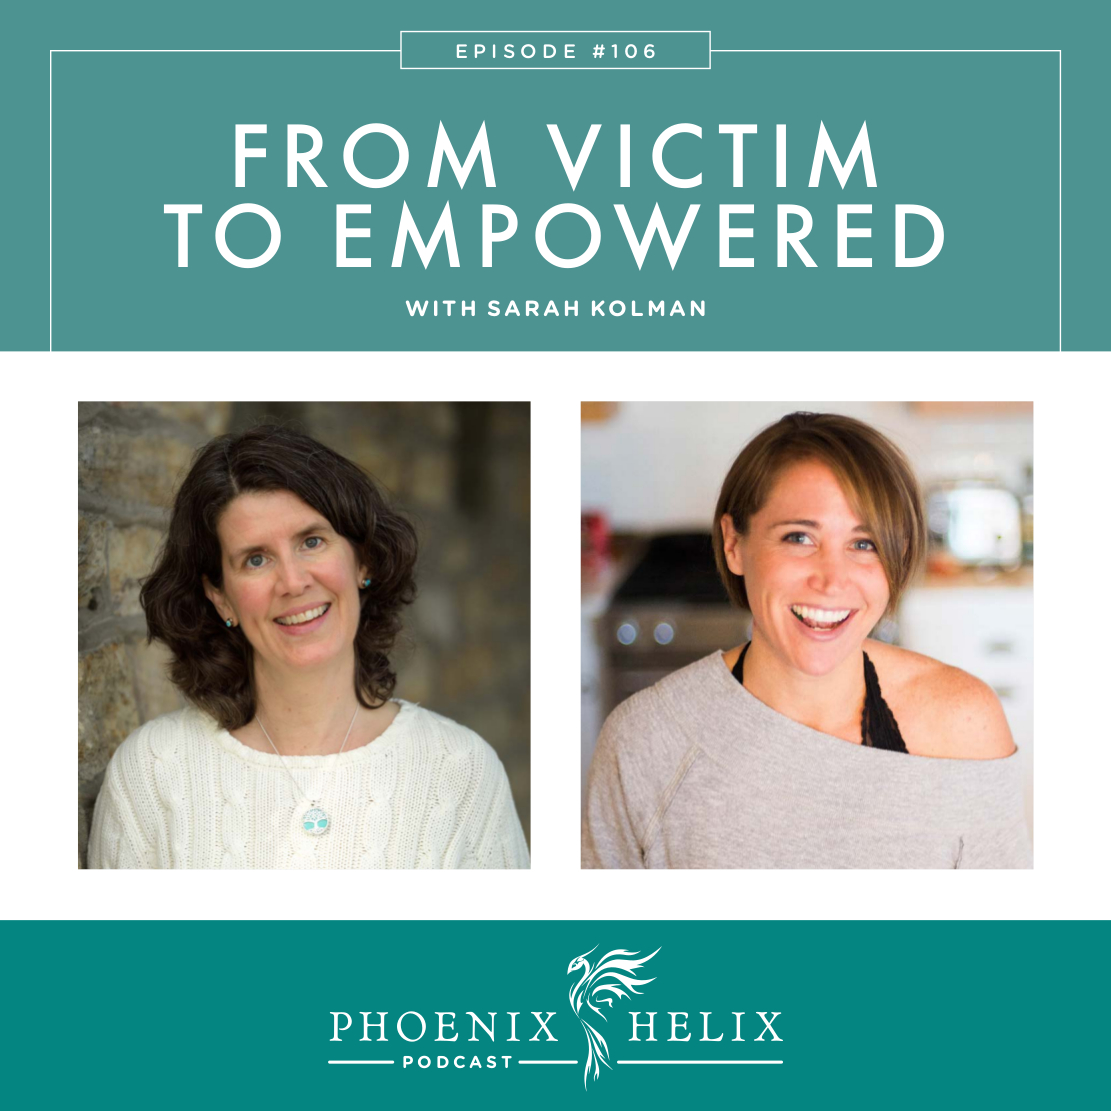 From Victim to Empowered with Sarah Kolman | Phoenix Helix Podcast